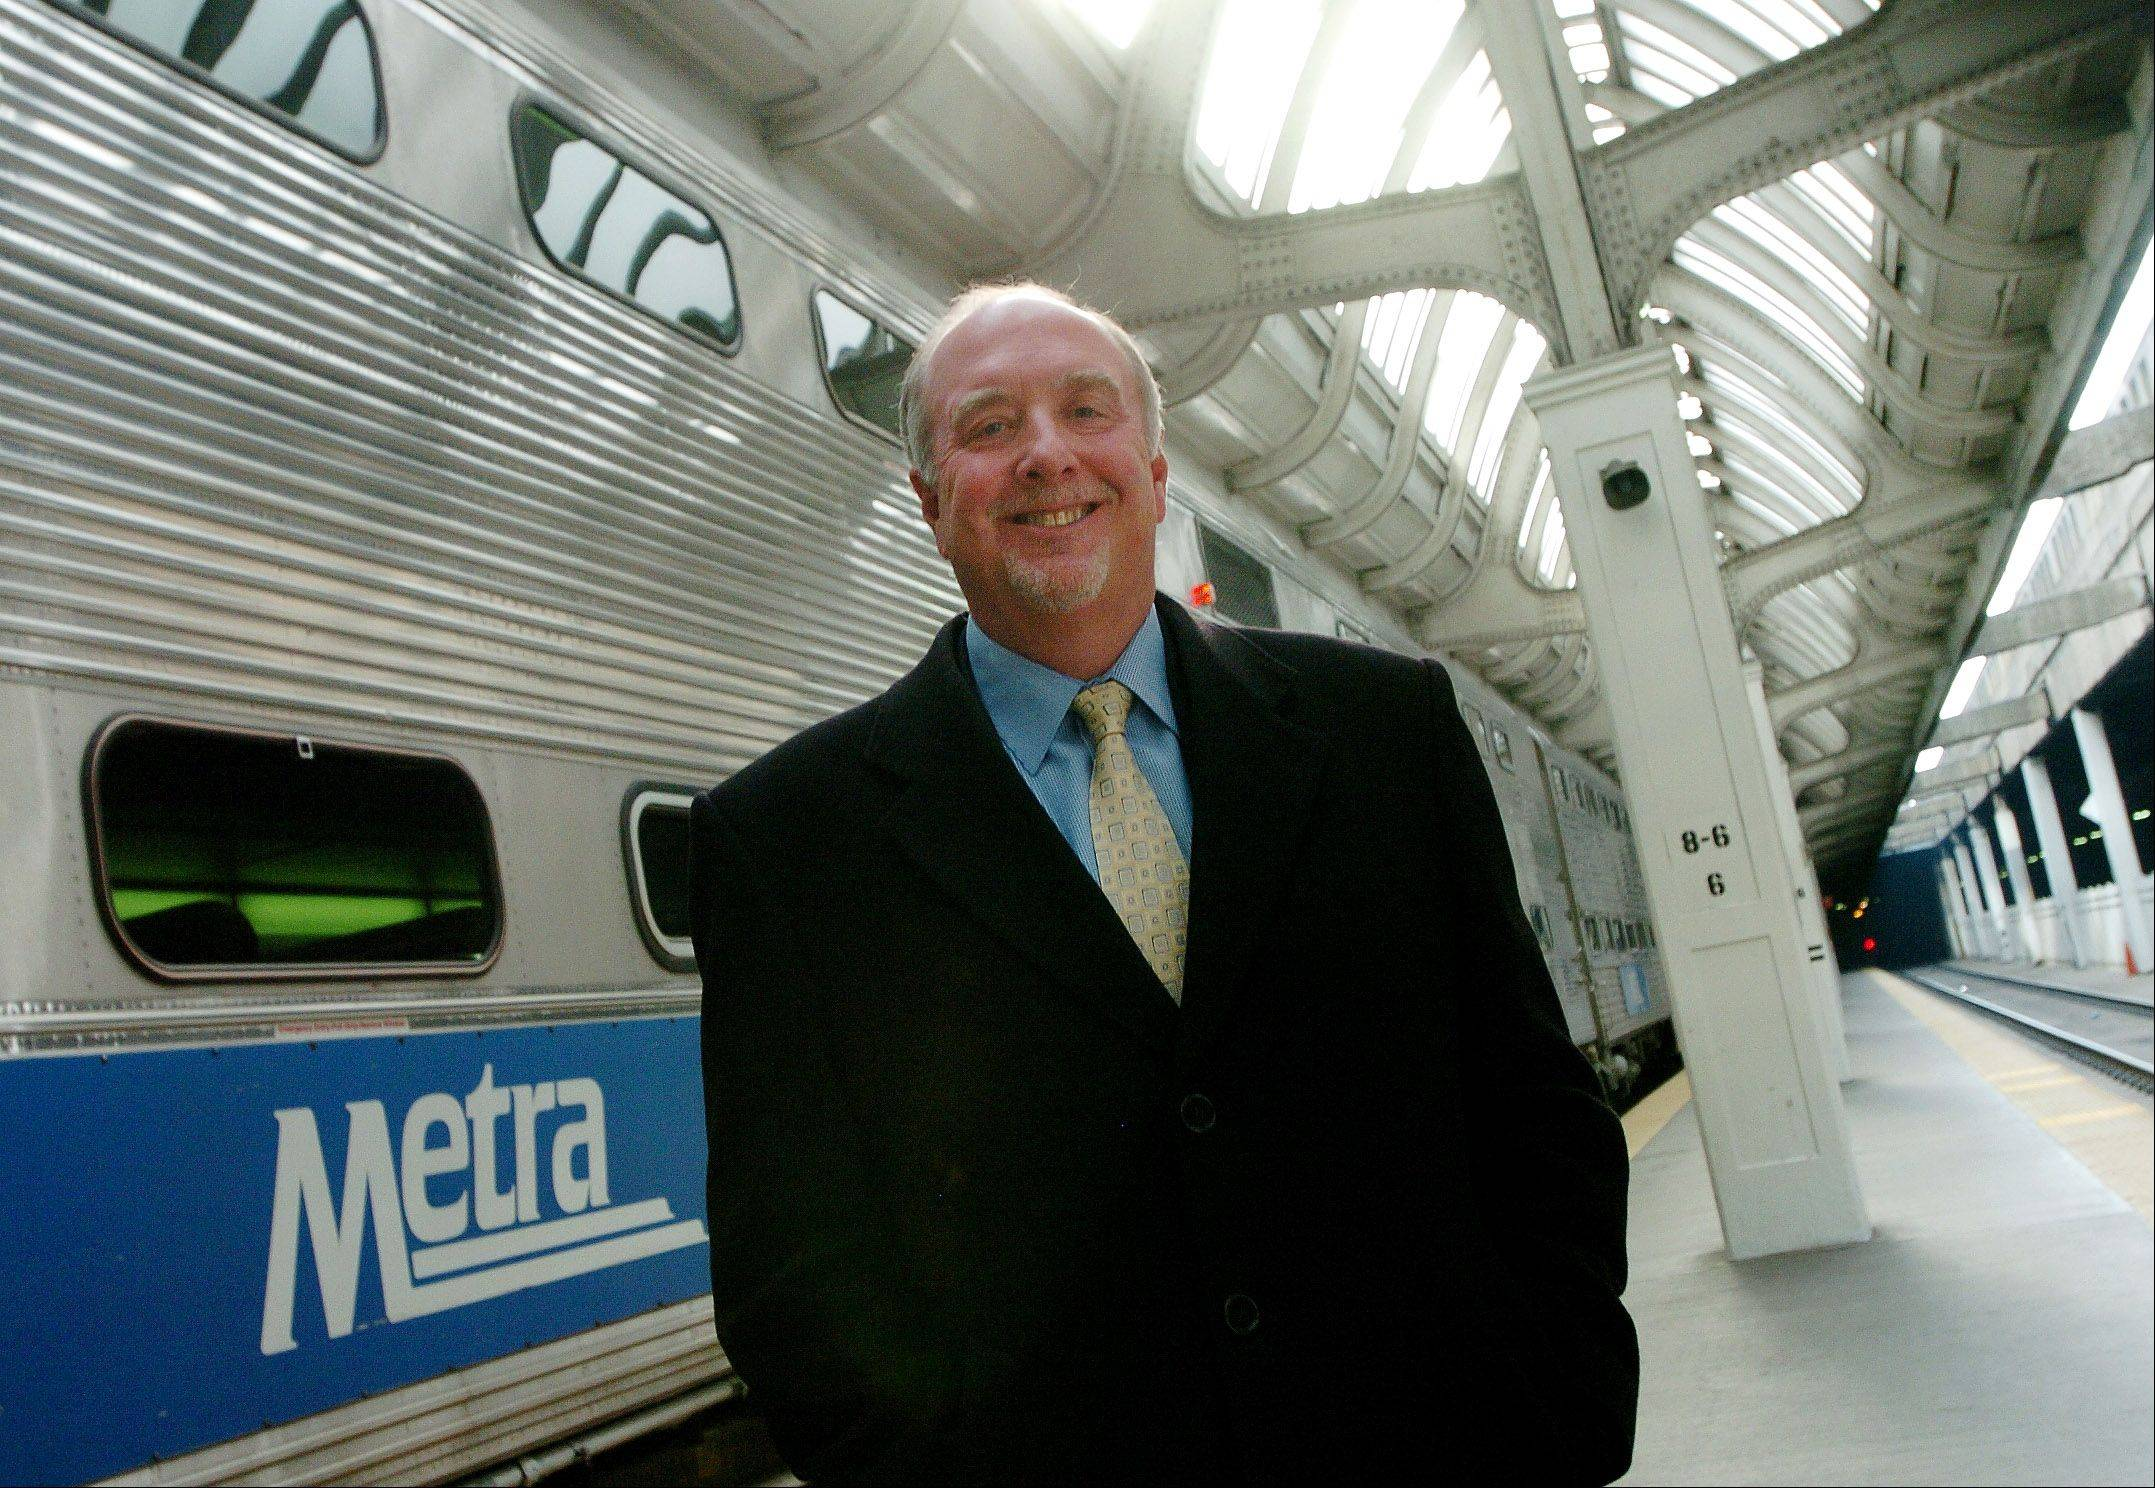 New Metra Chairman Brad O'Halloran says the allocation of funds within the agency must be equitable.